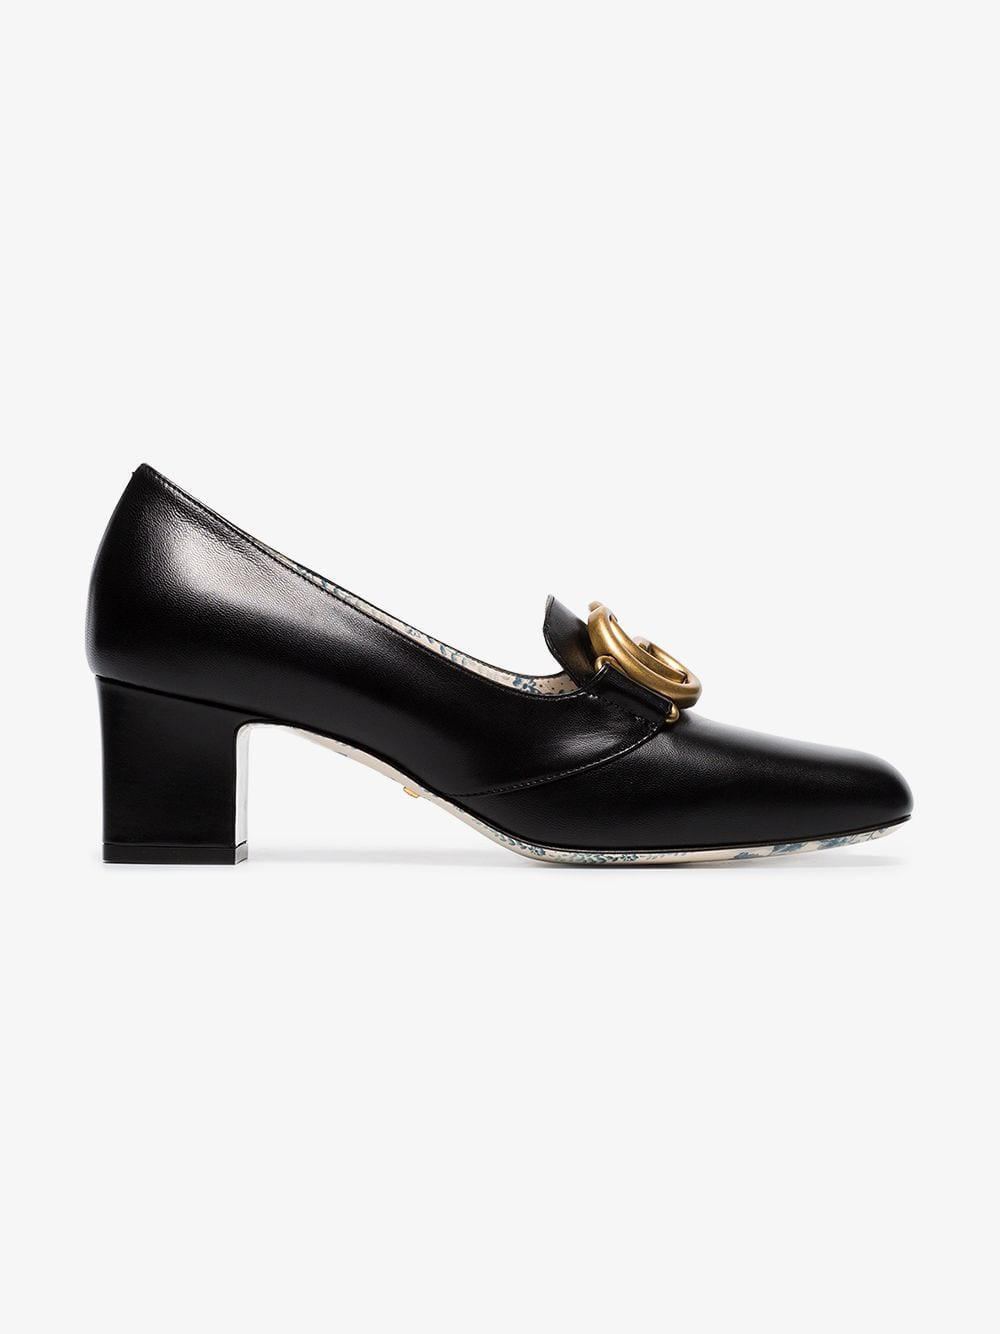 Gucci Double G decorated mid-heel pumps in black